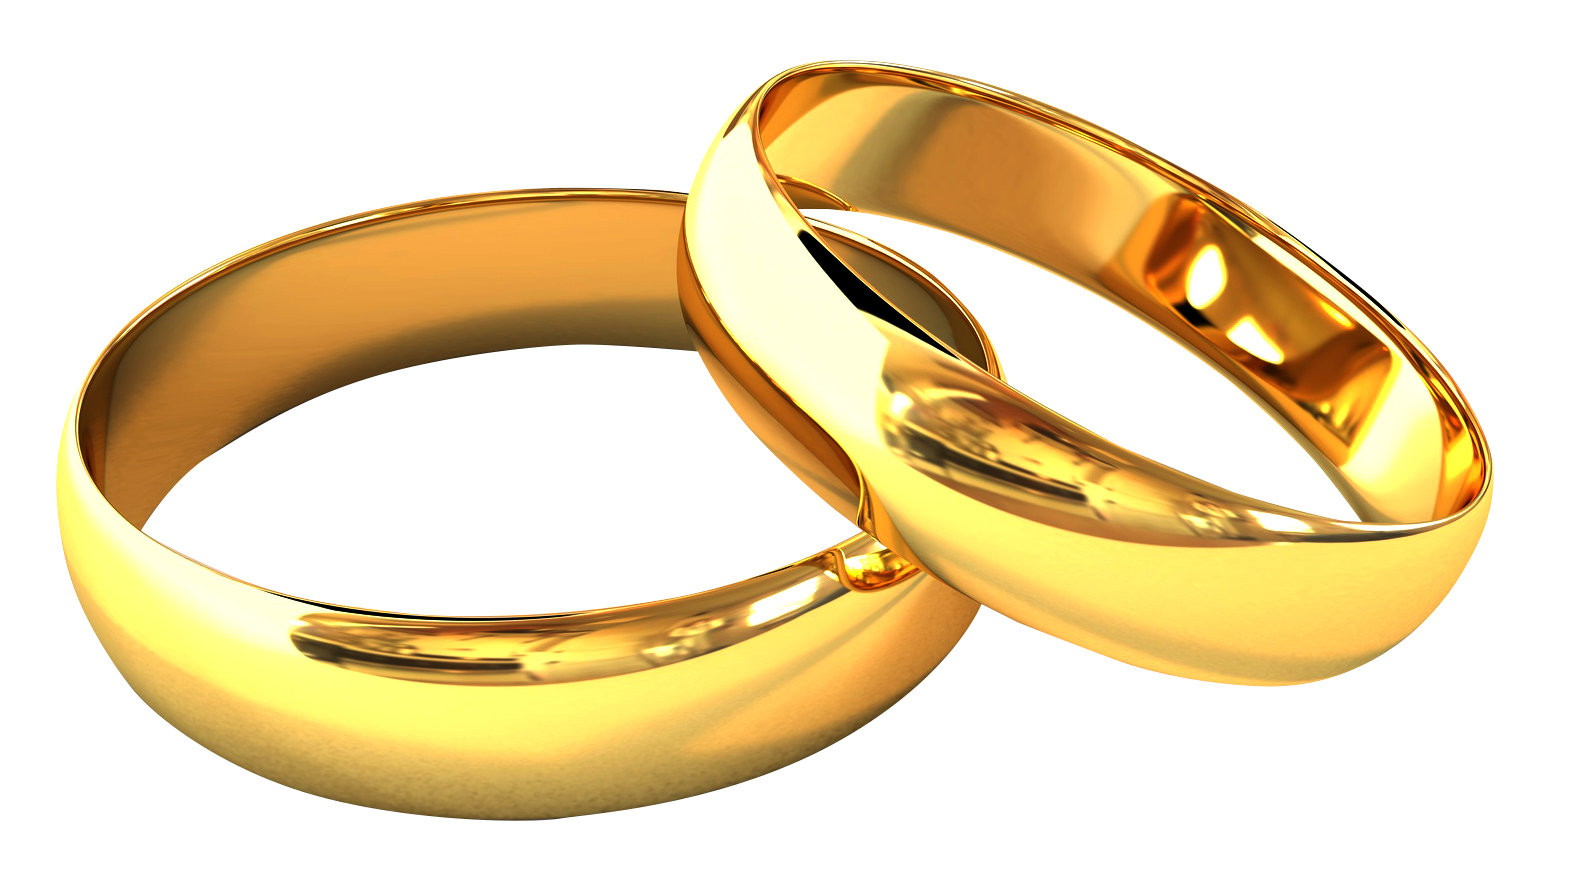 Anillos de boda download free clipart with a transparent.